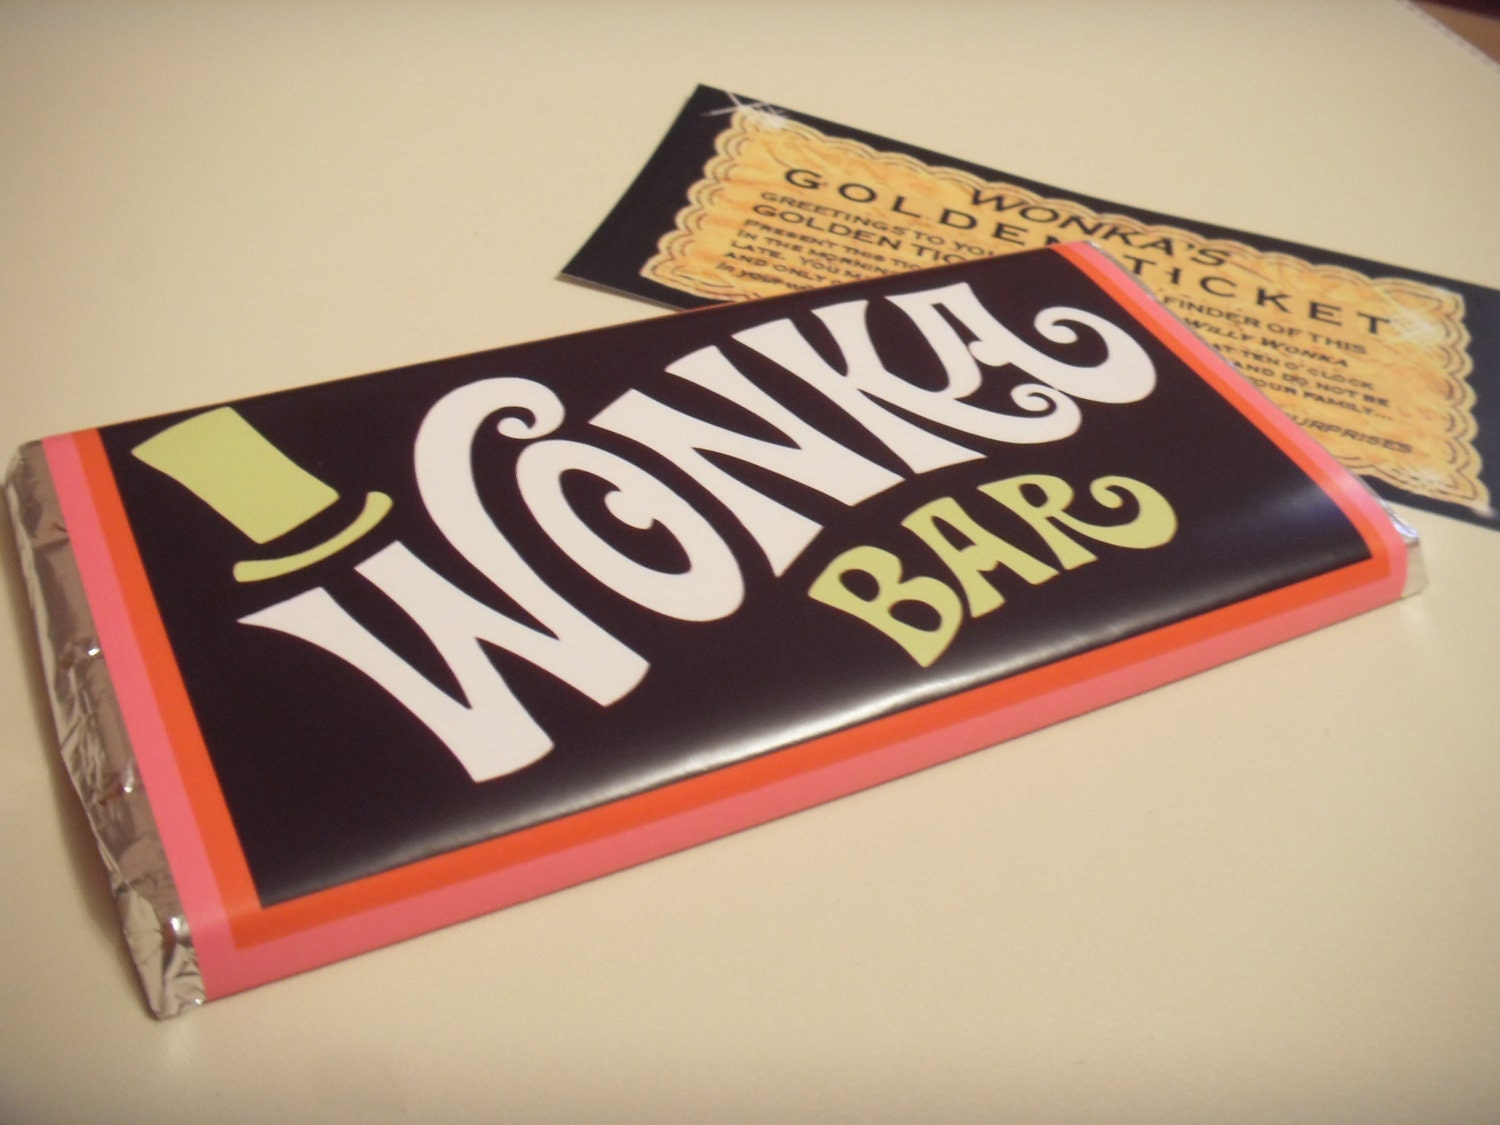 Willy wonka & the chocolate factory replica novelty wonka bar